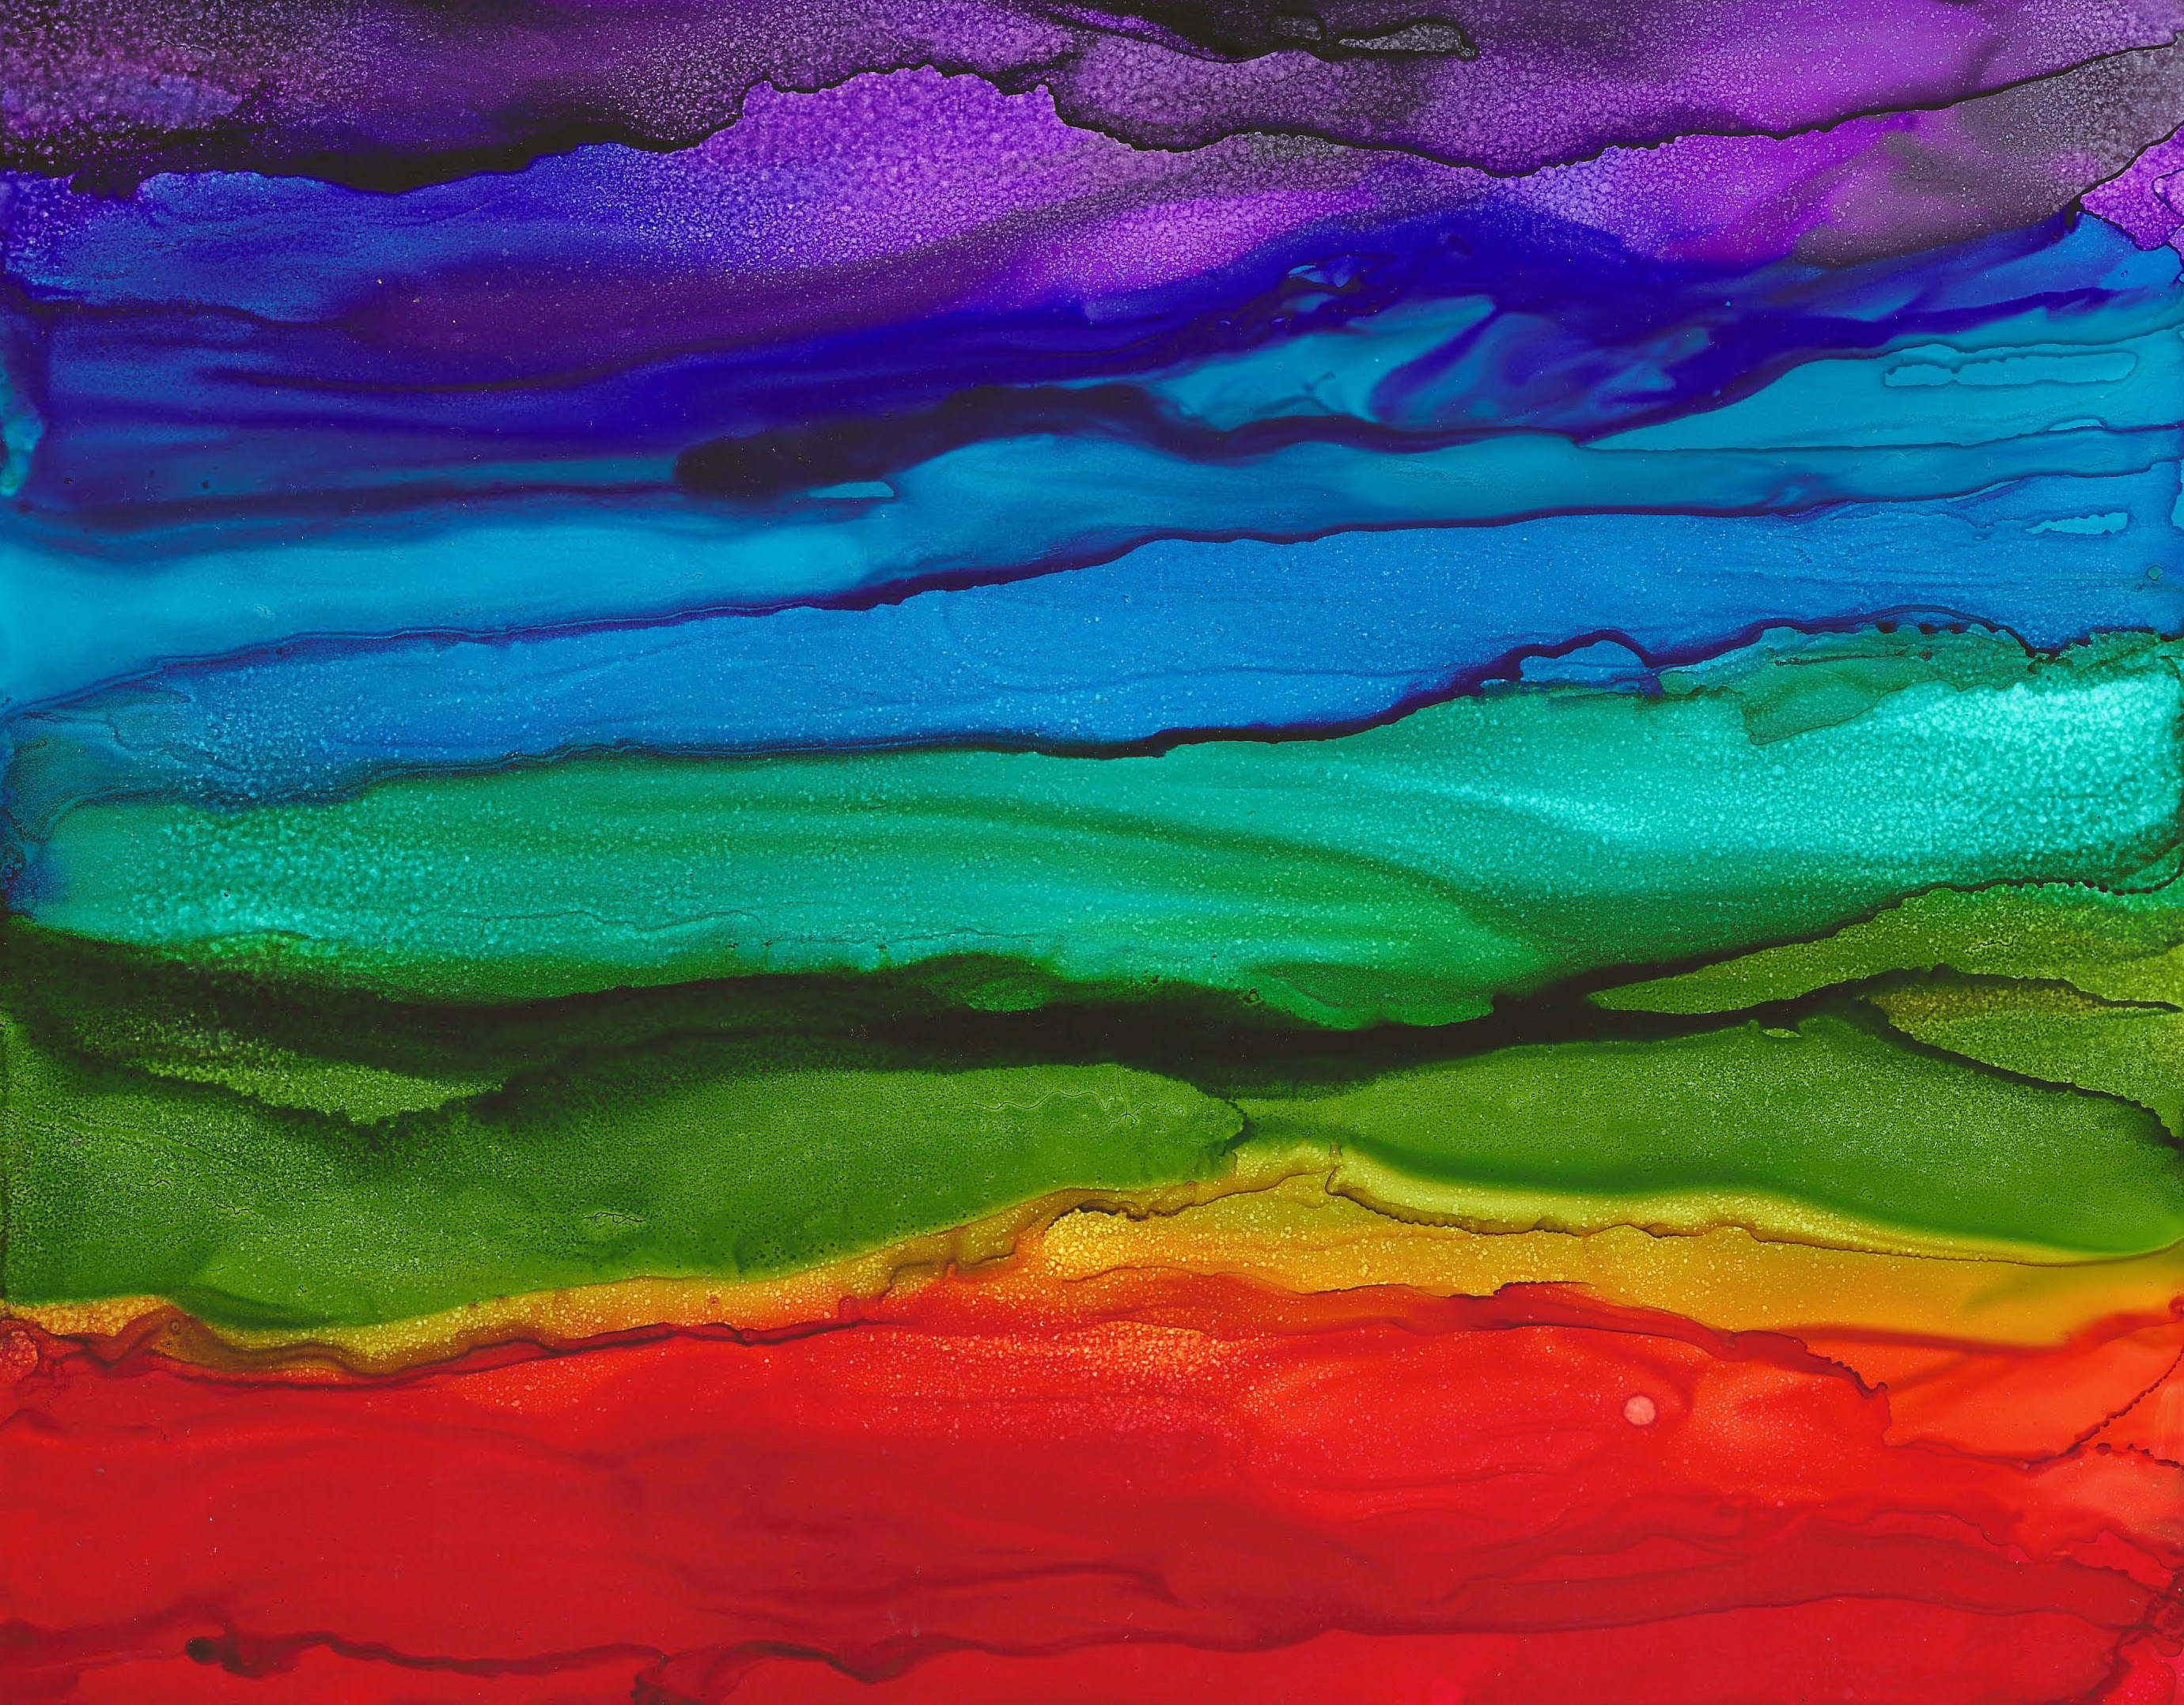 Rainbow Vision - Alcohol Ink - 11 X 14 - $150 - Sold - Print Available